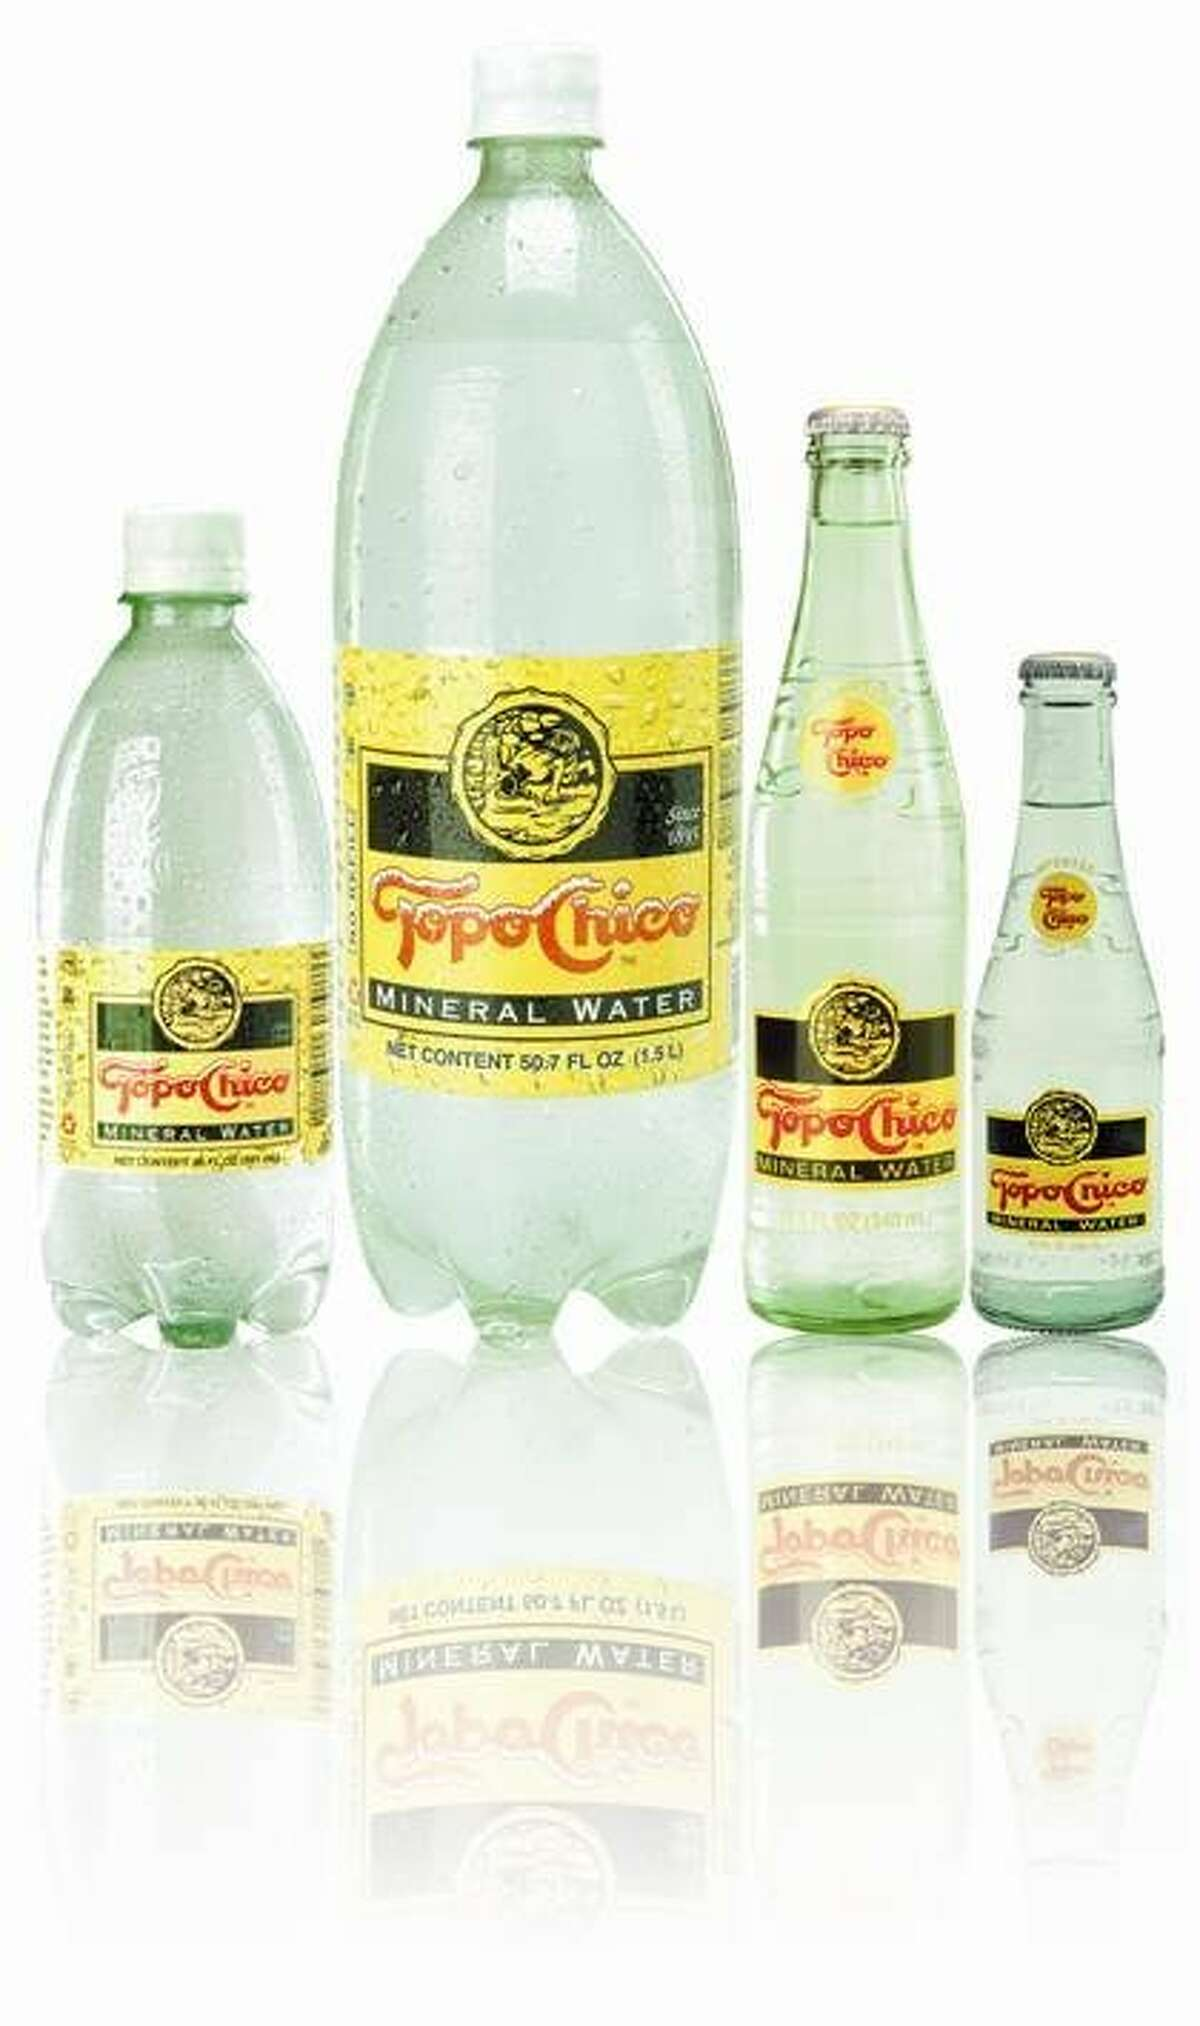 Topo Chico Although the state of Texas makes up approximately 70 percent of Topo Chico's United States sales across 35 states, the beloved hangover and taco helper has been bottled and sourced in Monterrey, Mexico since 1895.